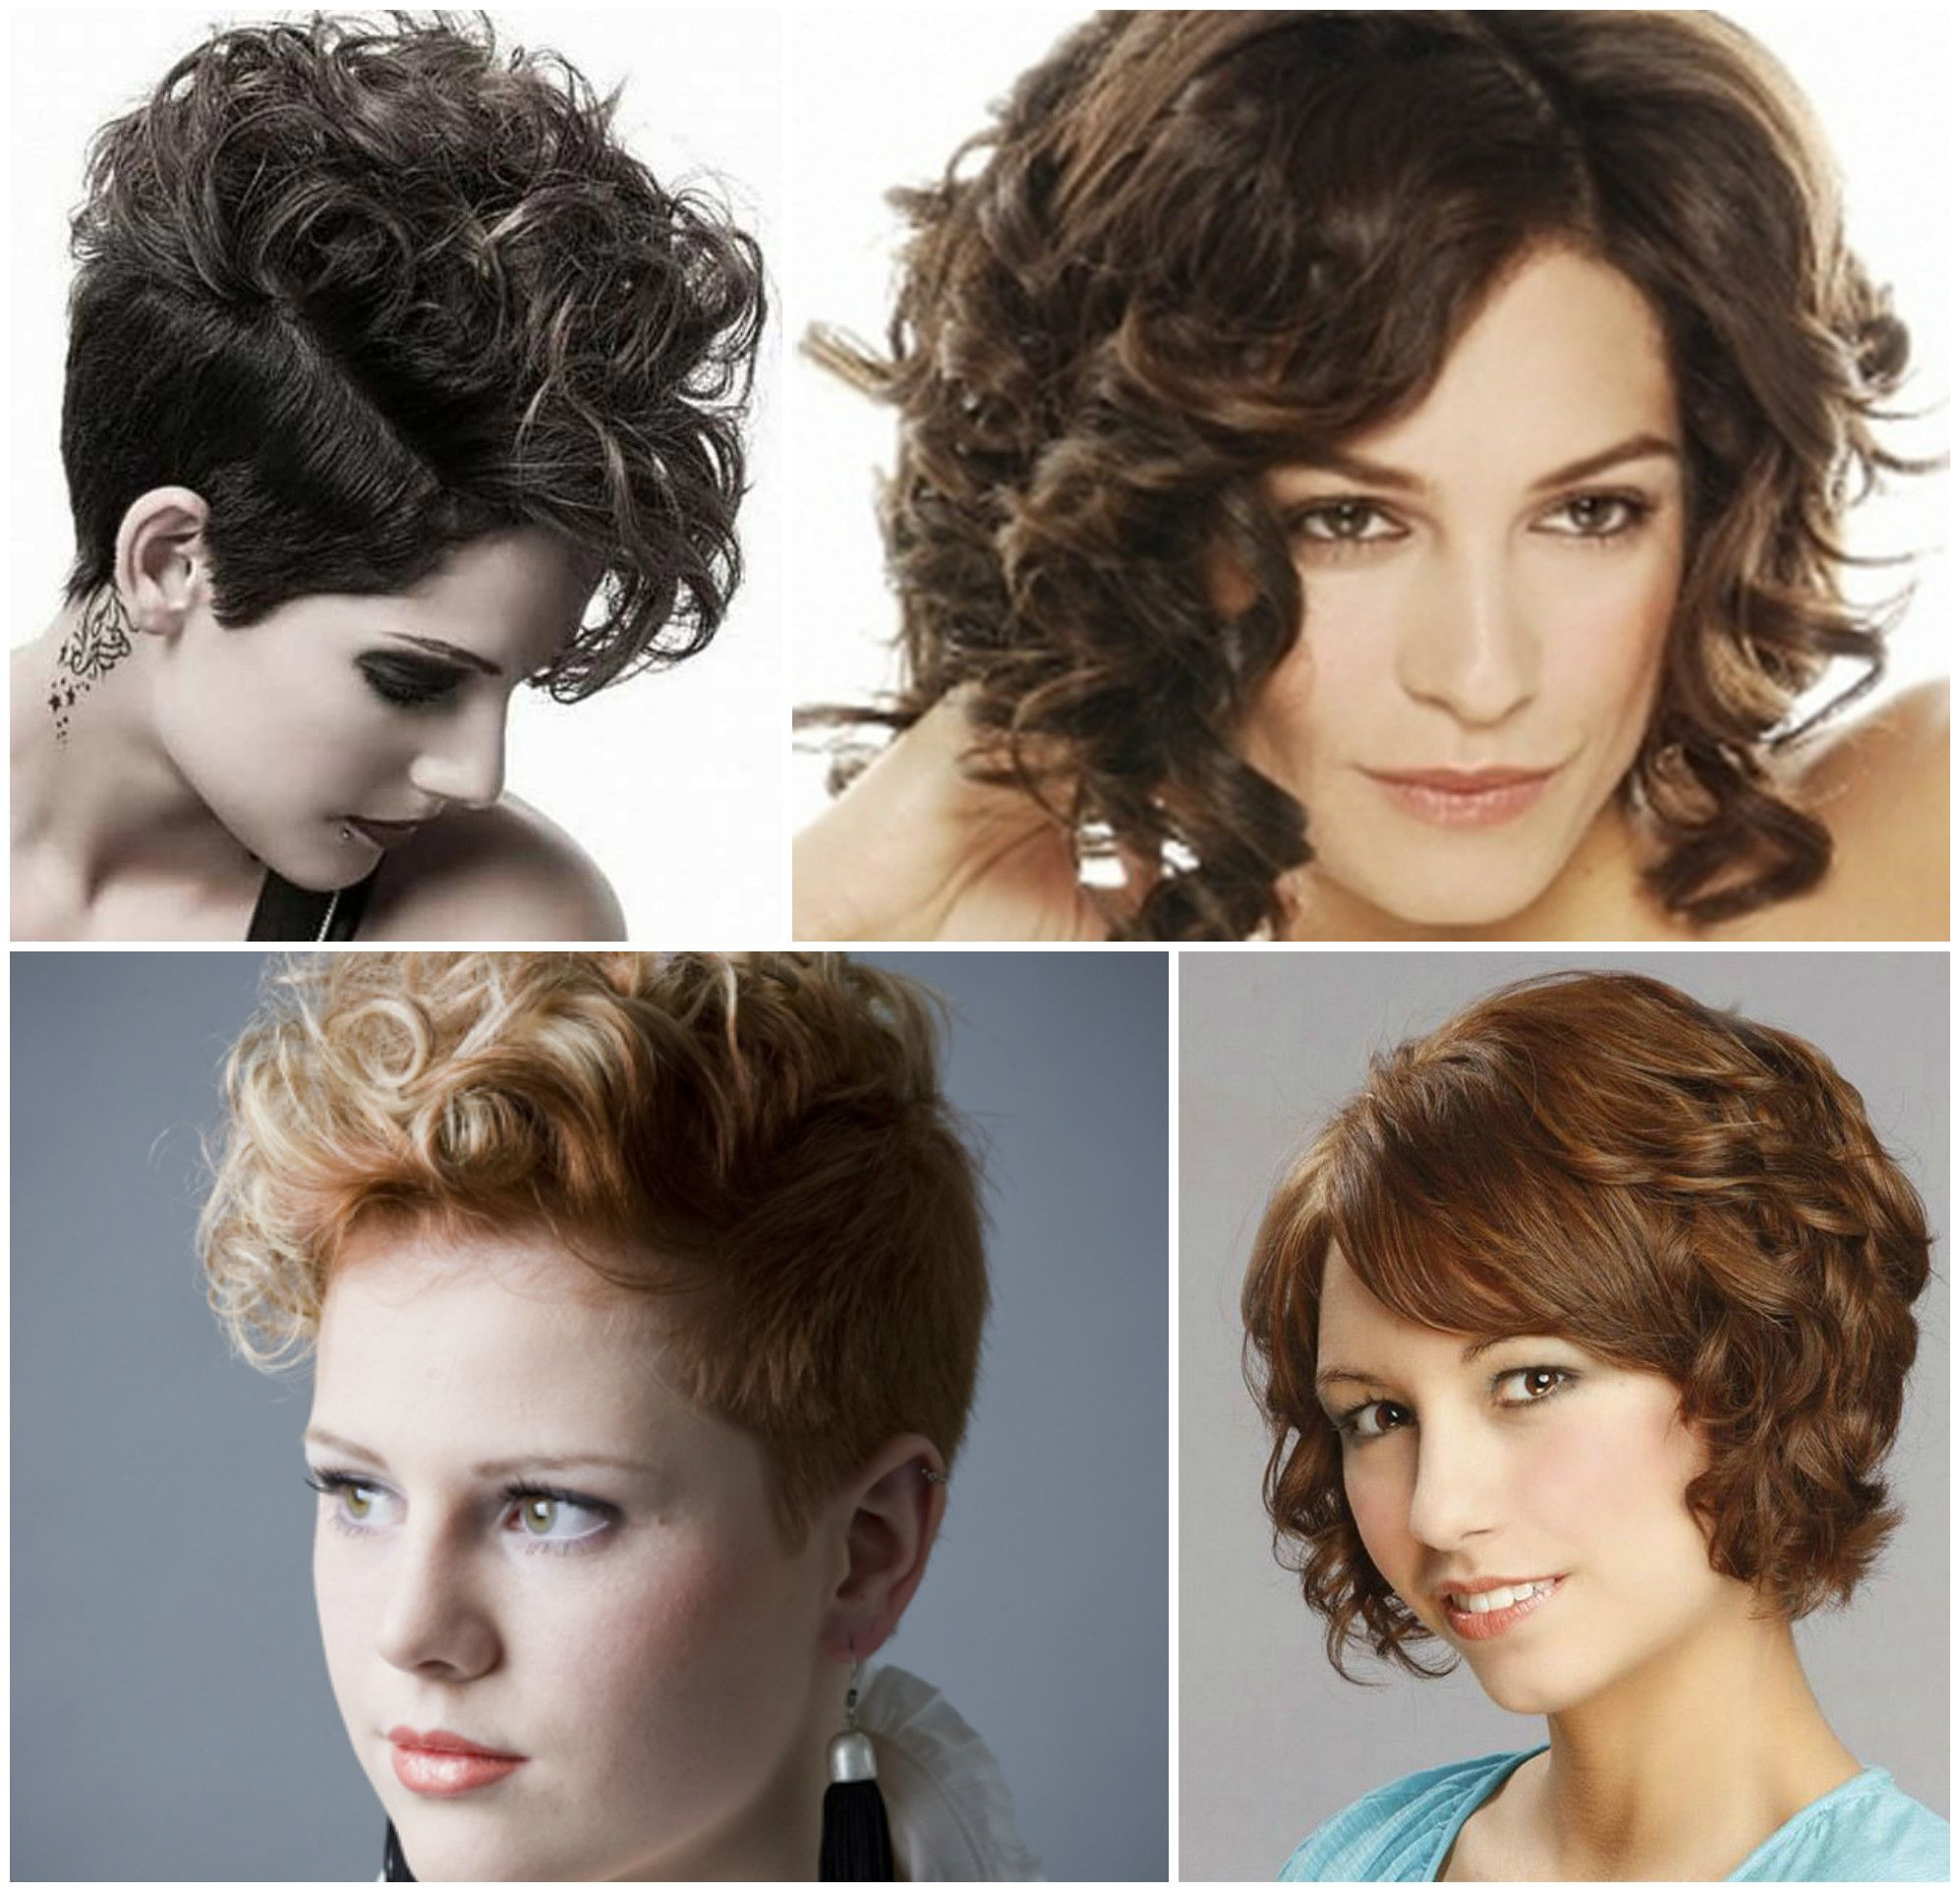 Short haircuts for curly hair best short hairstyles